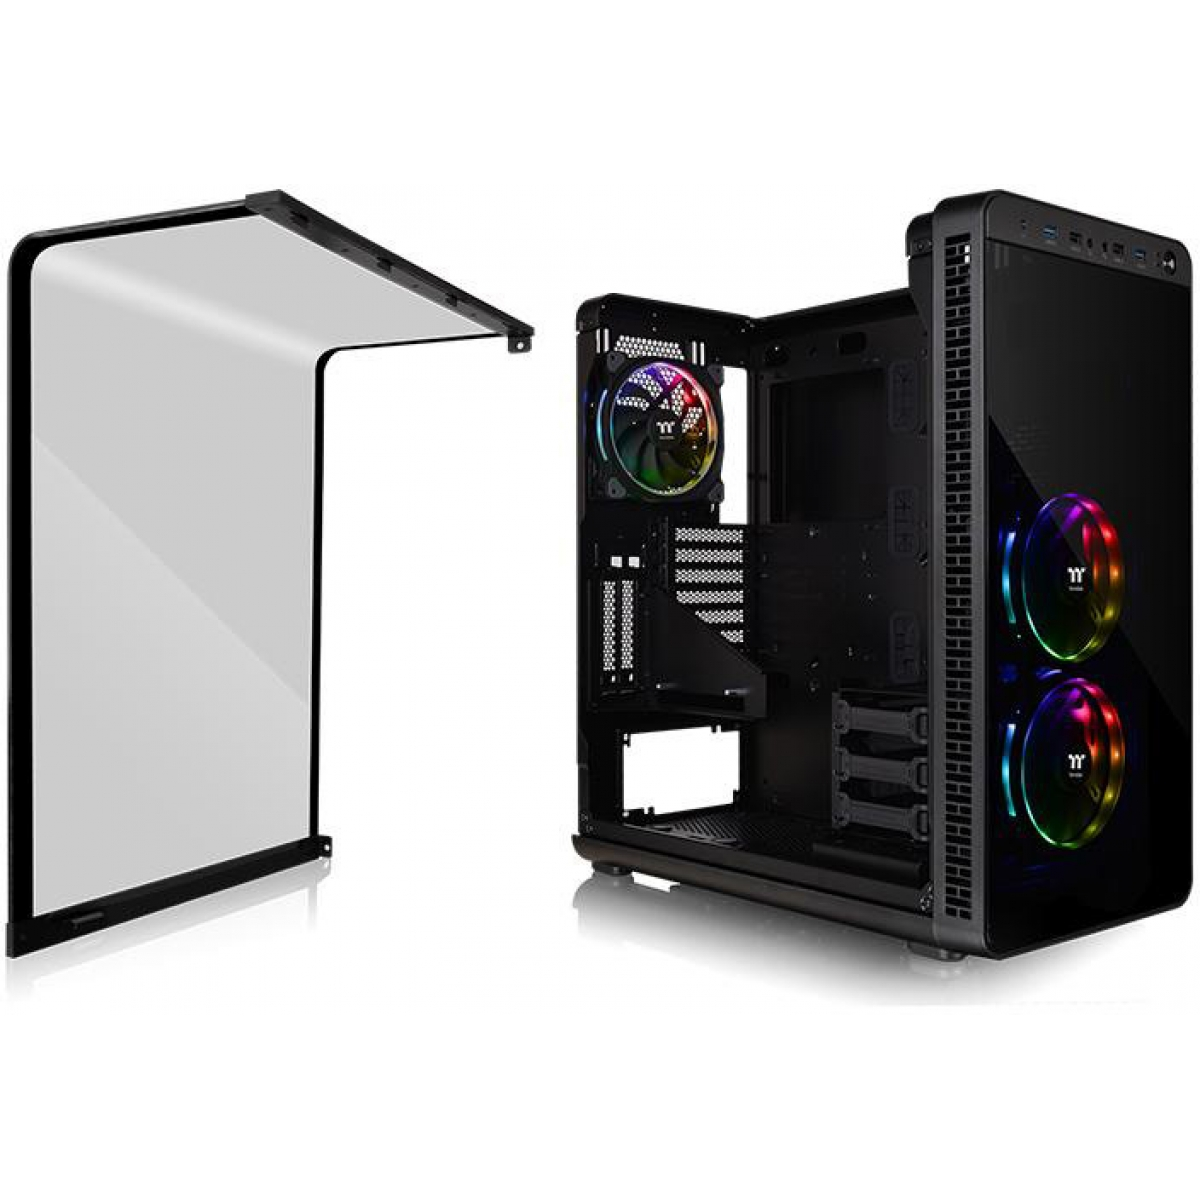 Gabinete Gamer Thermaltake View 37 RGB, Mid Tower, Com 3 Fans, Black, S-Fonte, CA-1J7-00M1WN-01